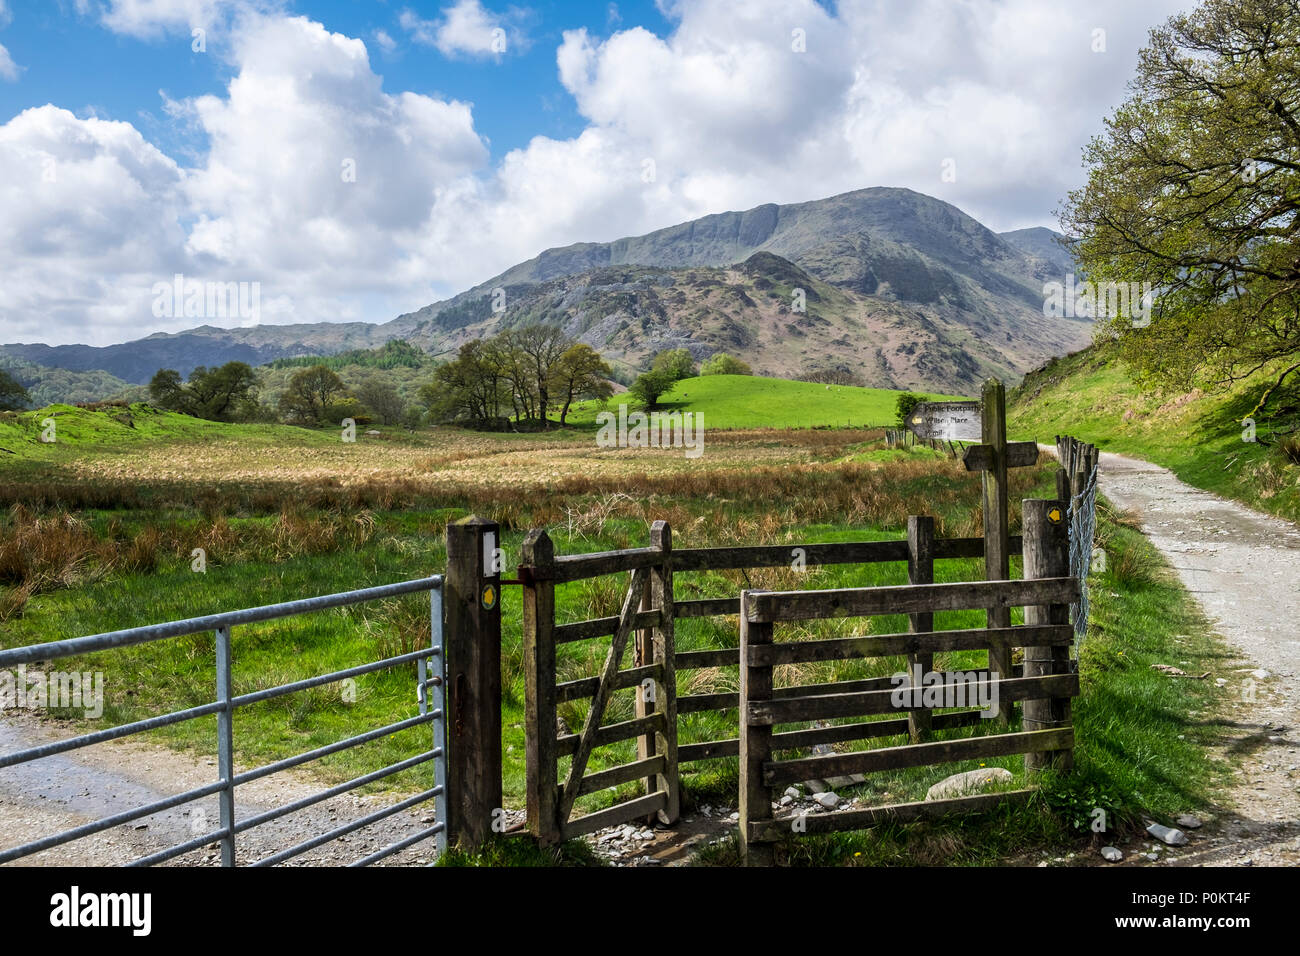 Wetherlam and signpost  from near Elterwater, Lake District, Cumbria, England Stock Photo